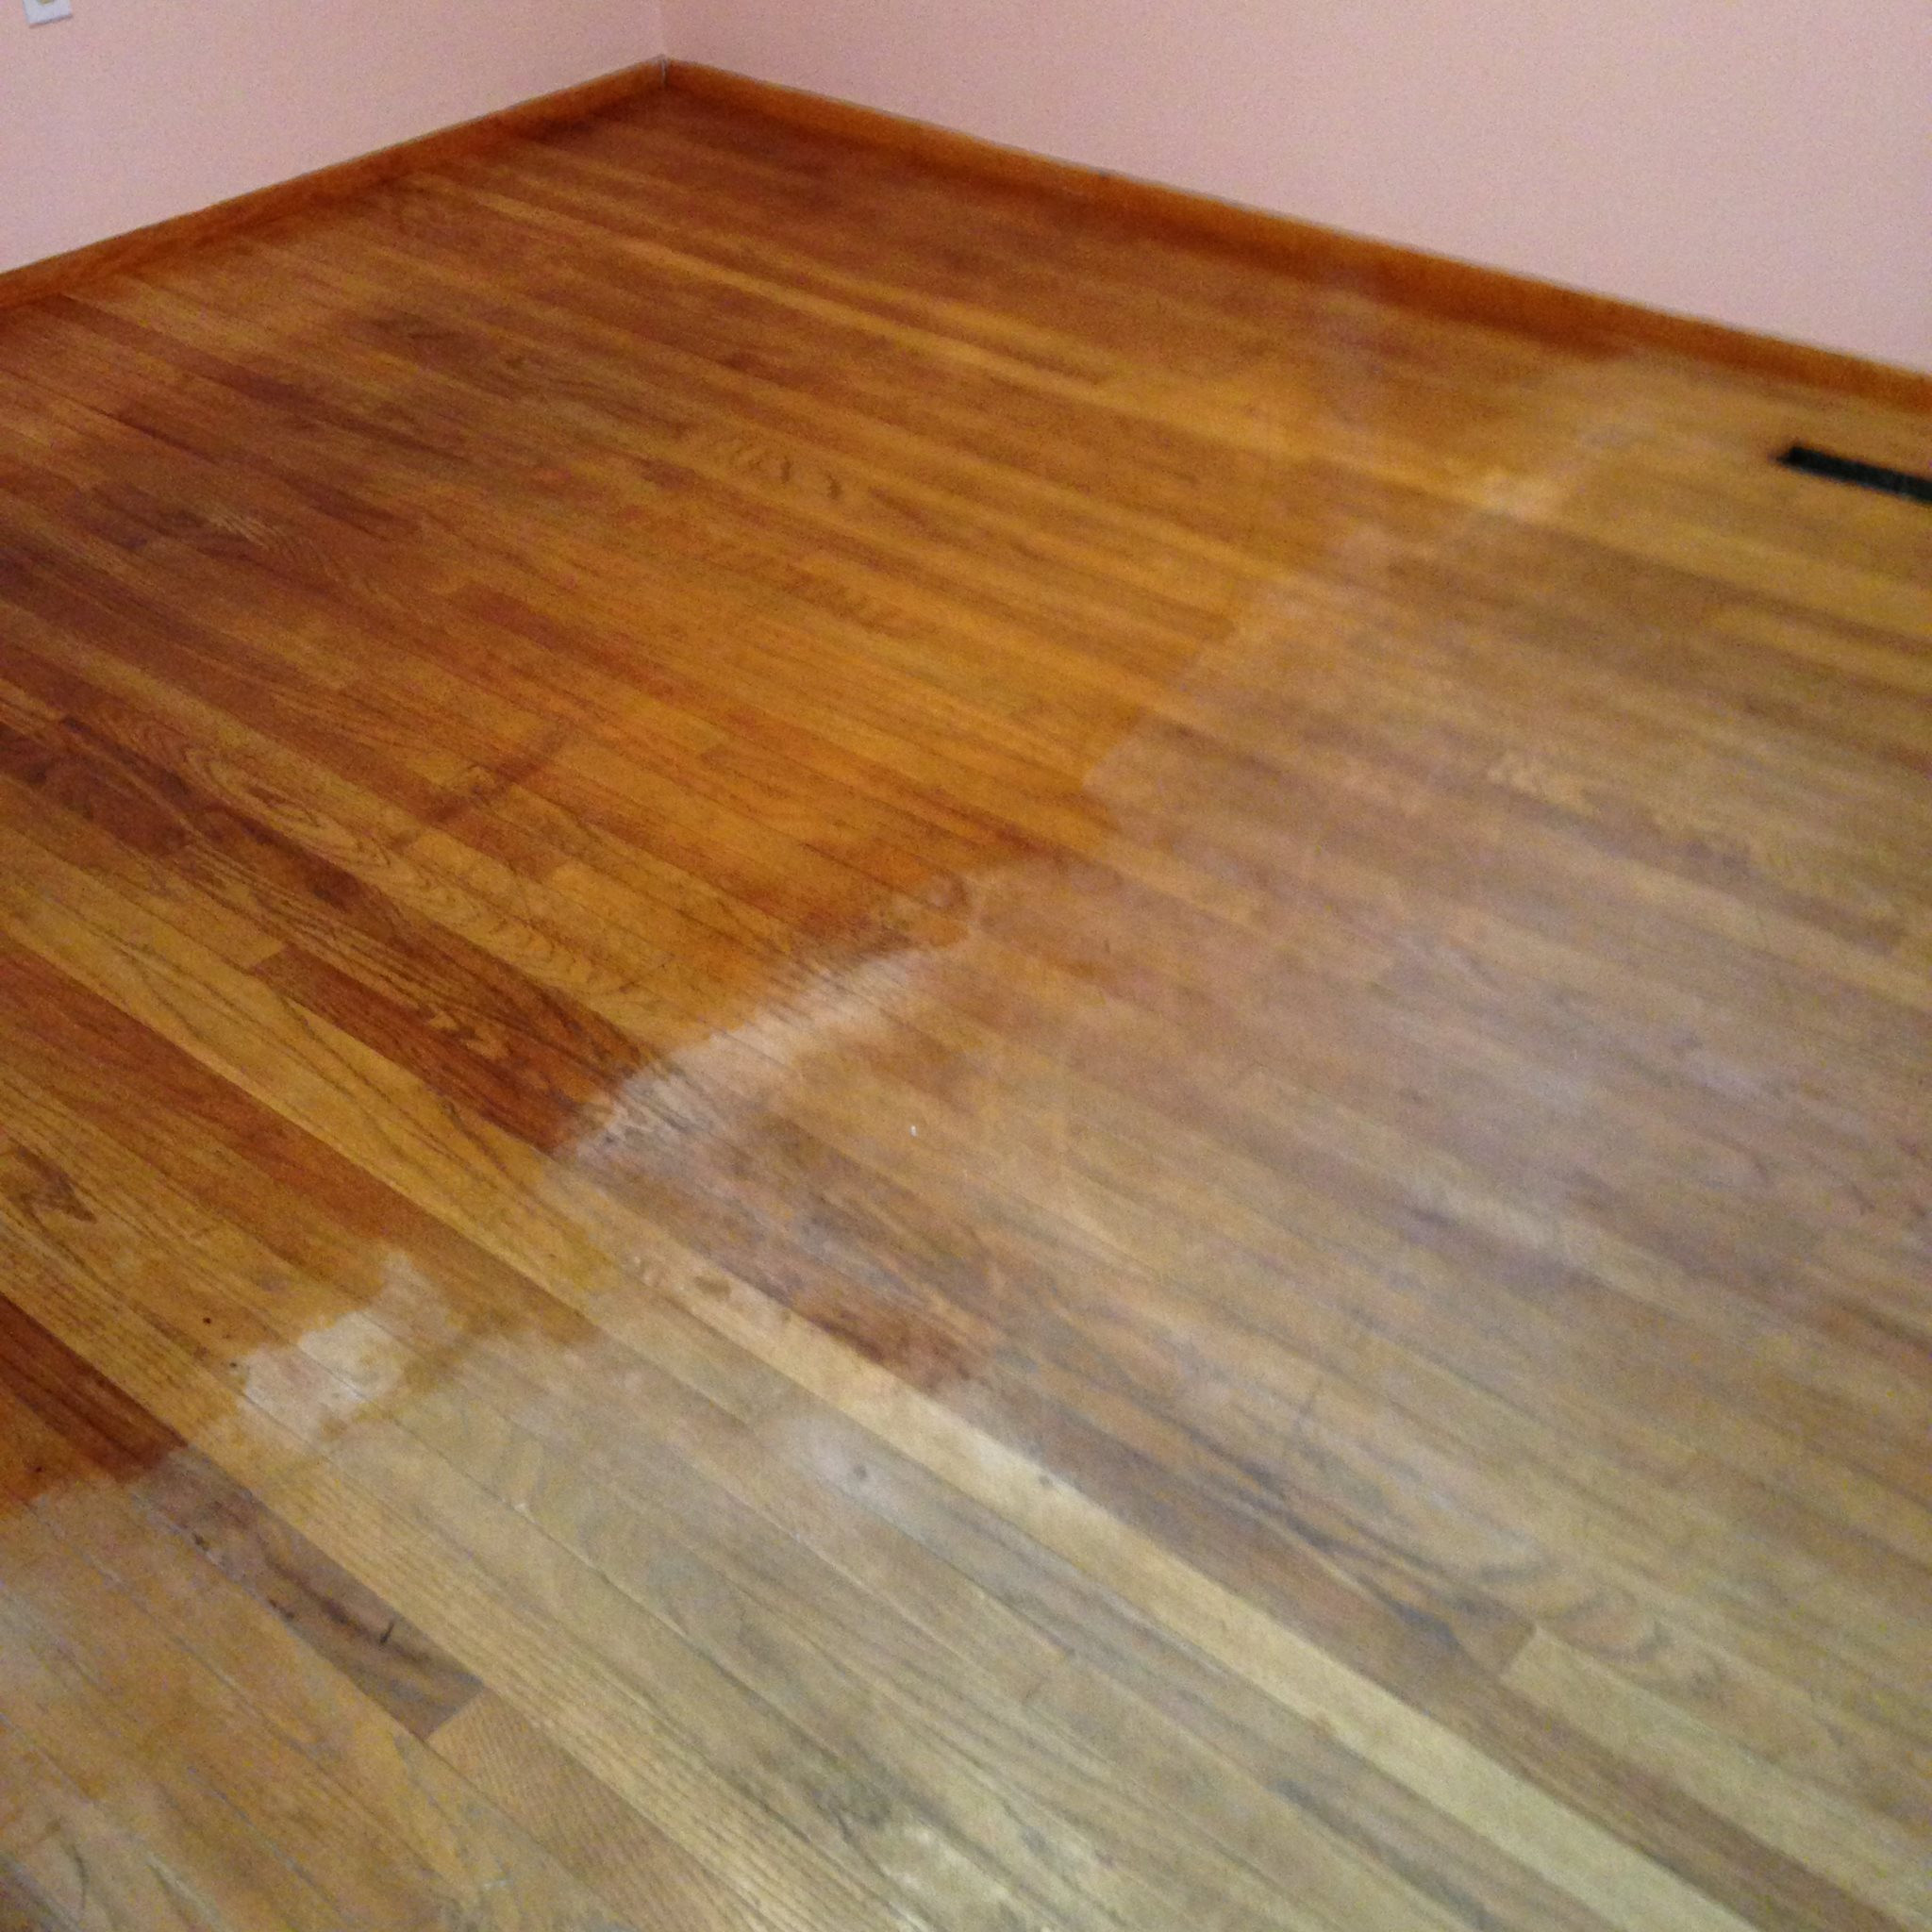 hardwood floor dent repair of 15 wood floor hacks every homeowner needs to know inside wood floor hacks 15